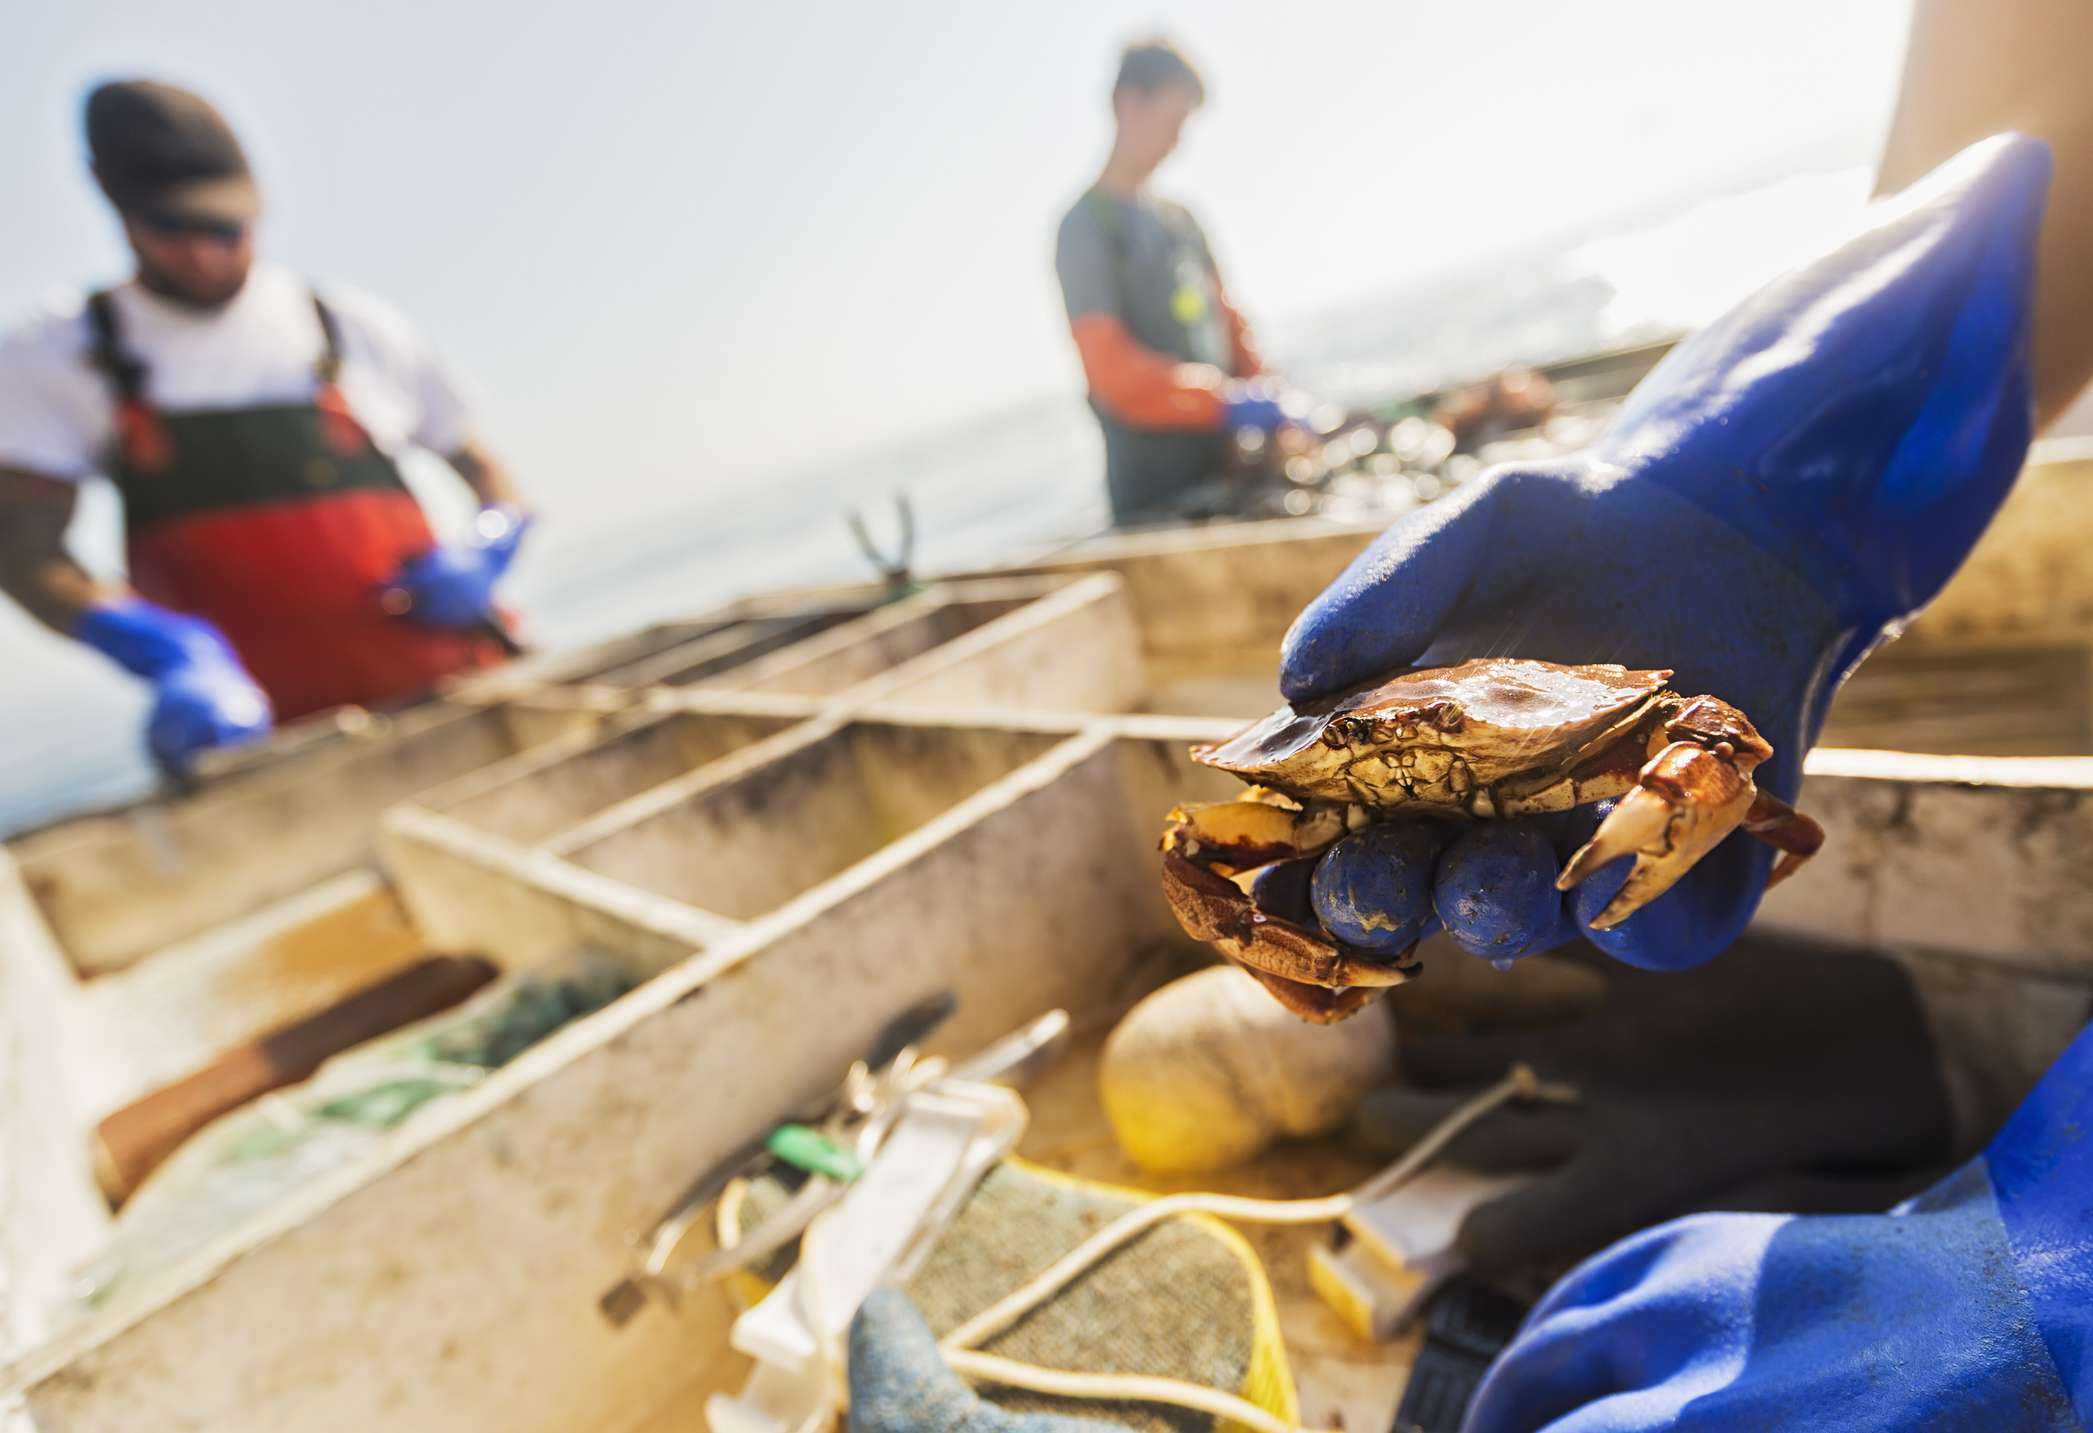 Gloved hand holding maine crab over a large wooden pallet